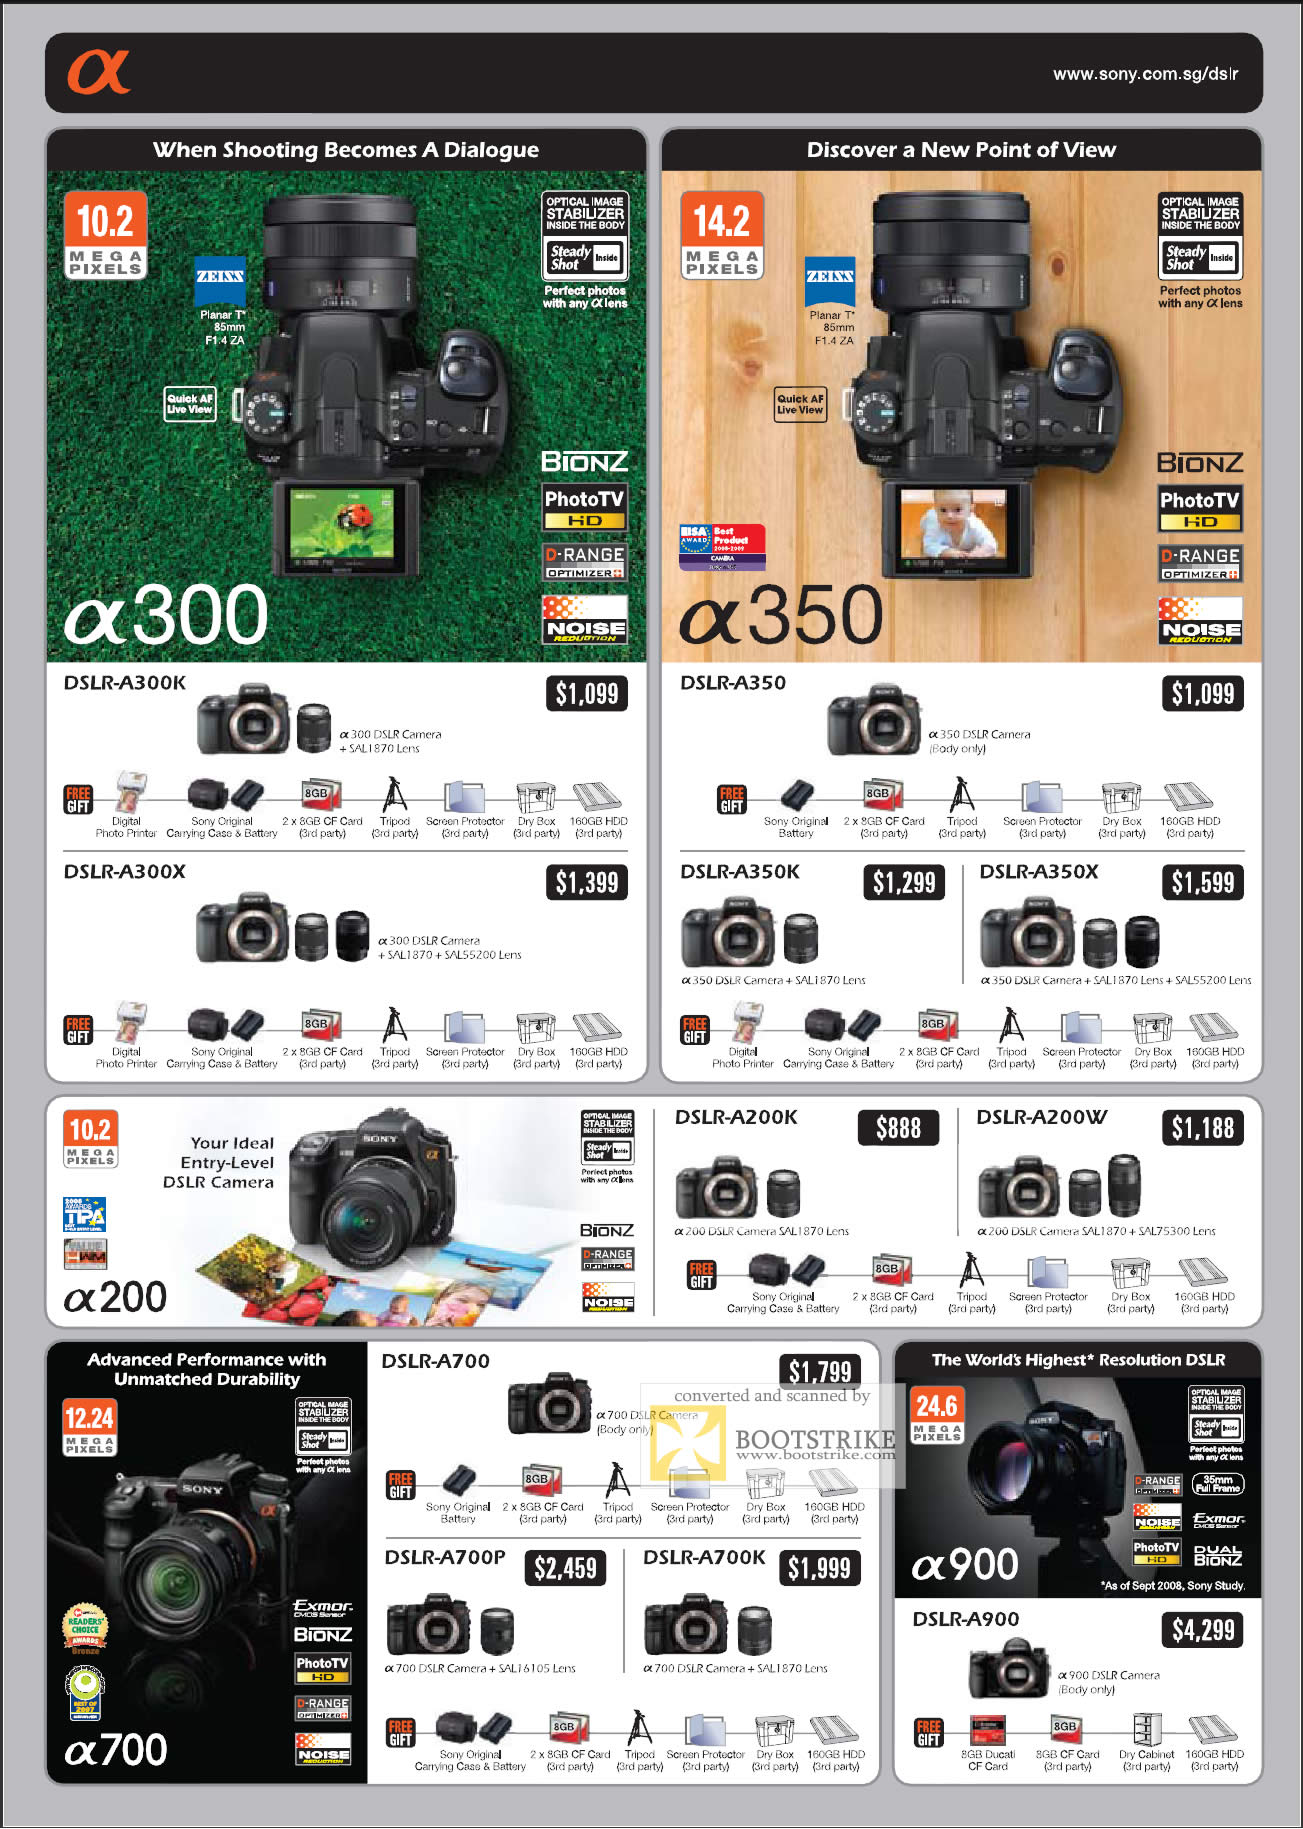 Camera Sony Dslr Camera Price List sony alpha camera dslr it show 2009 price list brochure flyer image of dslr